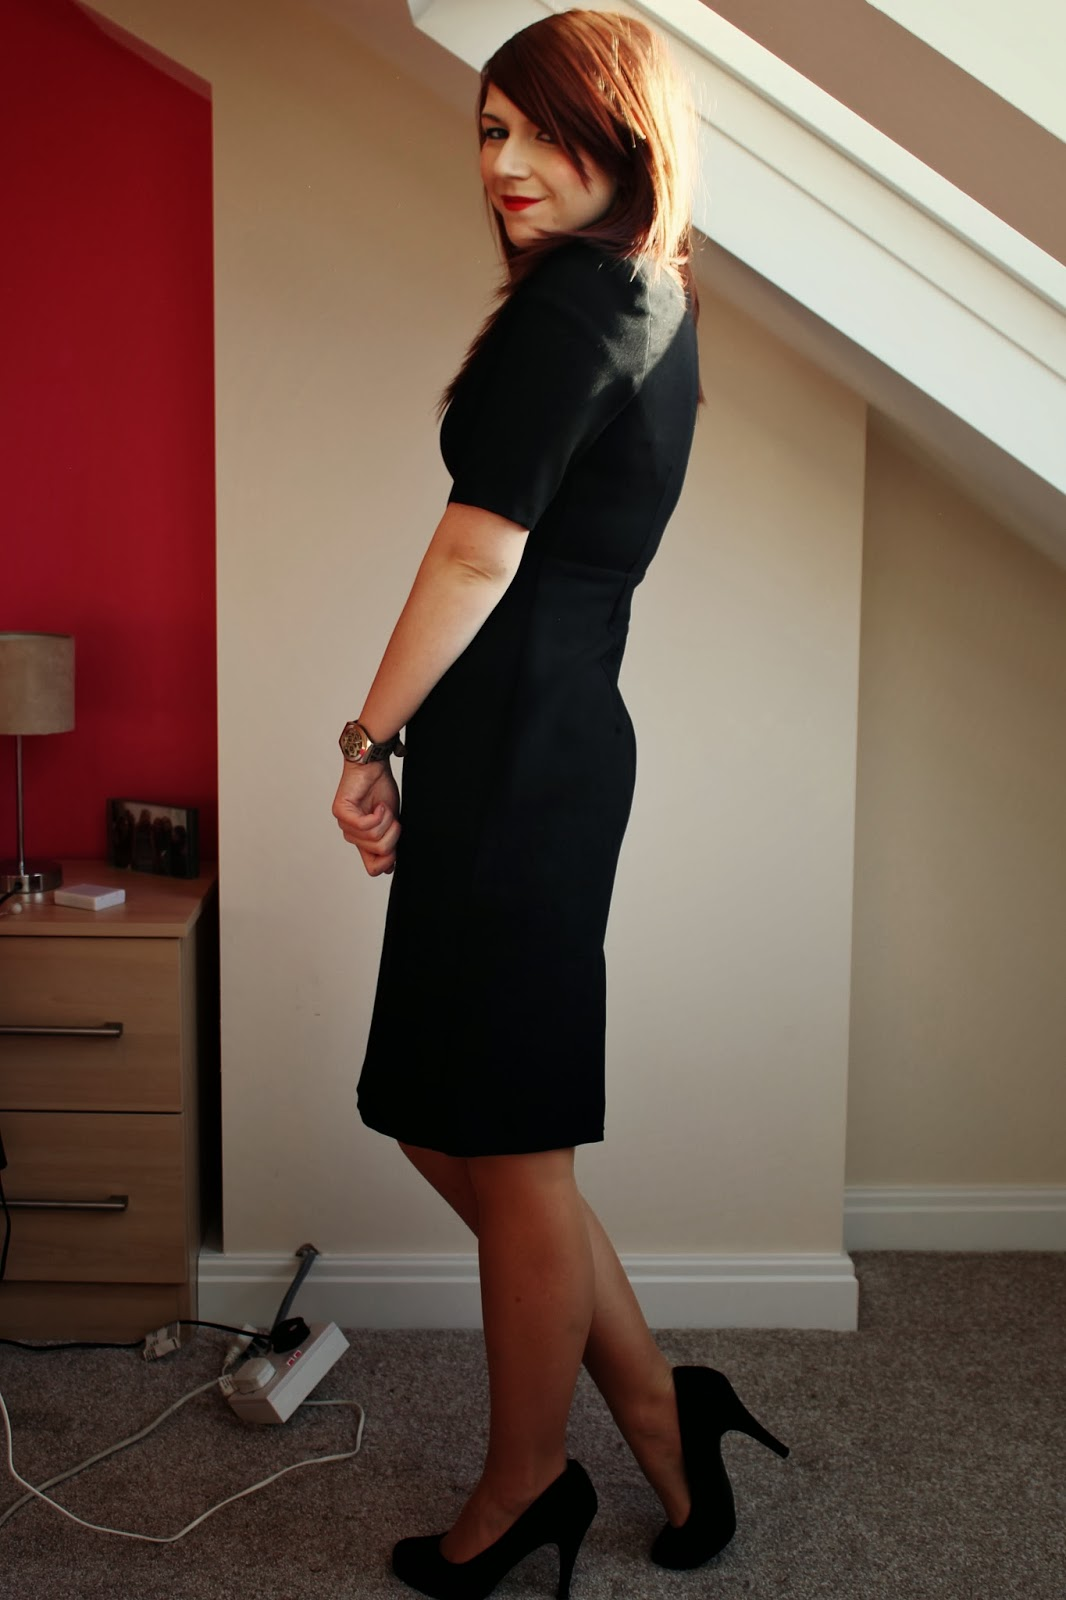 Now 10 little black dresses for - It S Great To Dress Up But It S Great Not To Too Now I M Saving This Dress For Christmas Eve